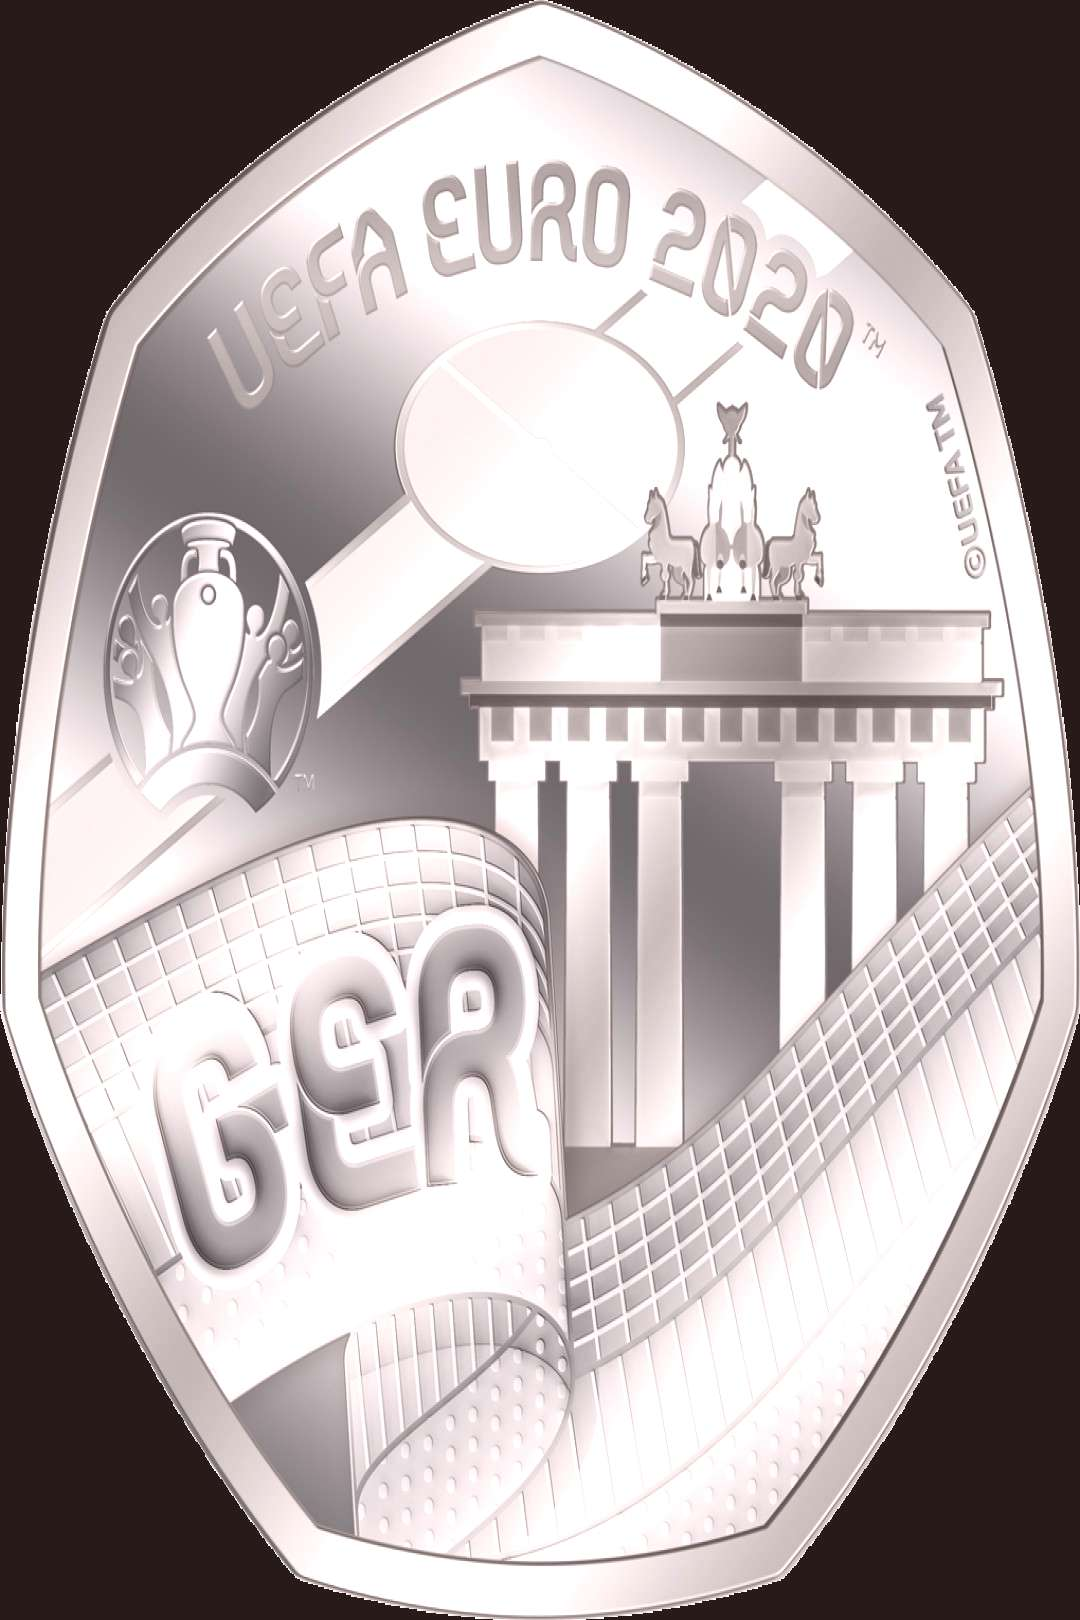 The official commemorative coins for the UEFA EURO 2020 ™ - Start quotGermanyquot a... - The official